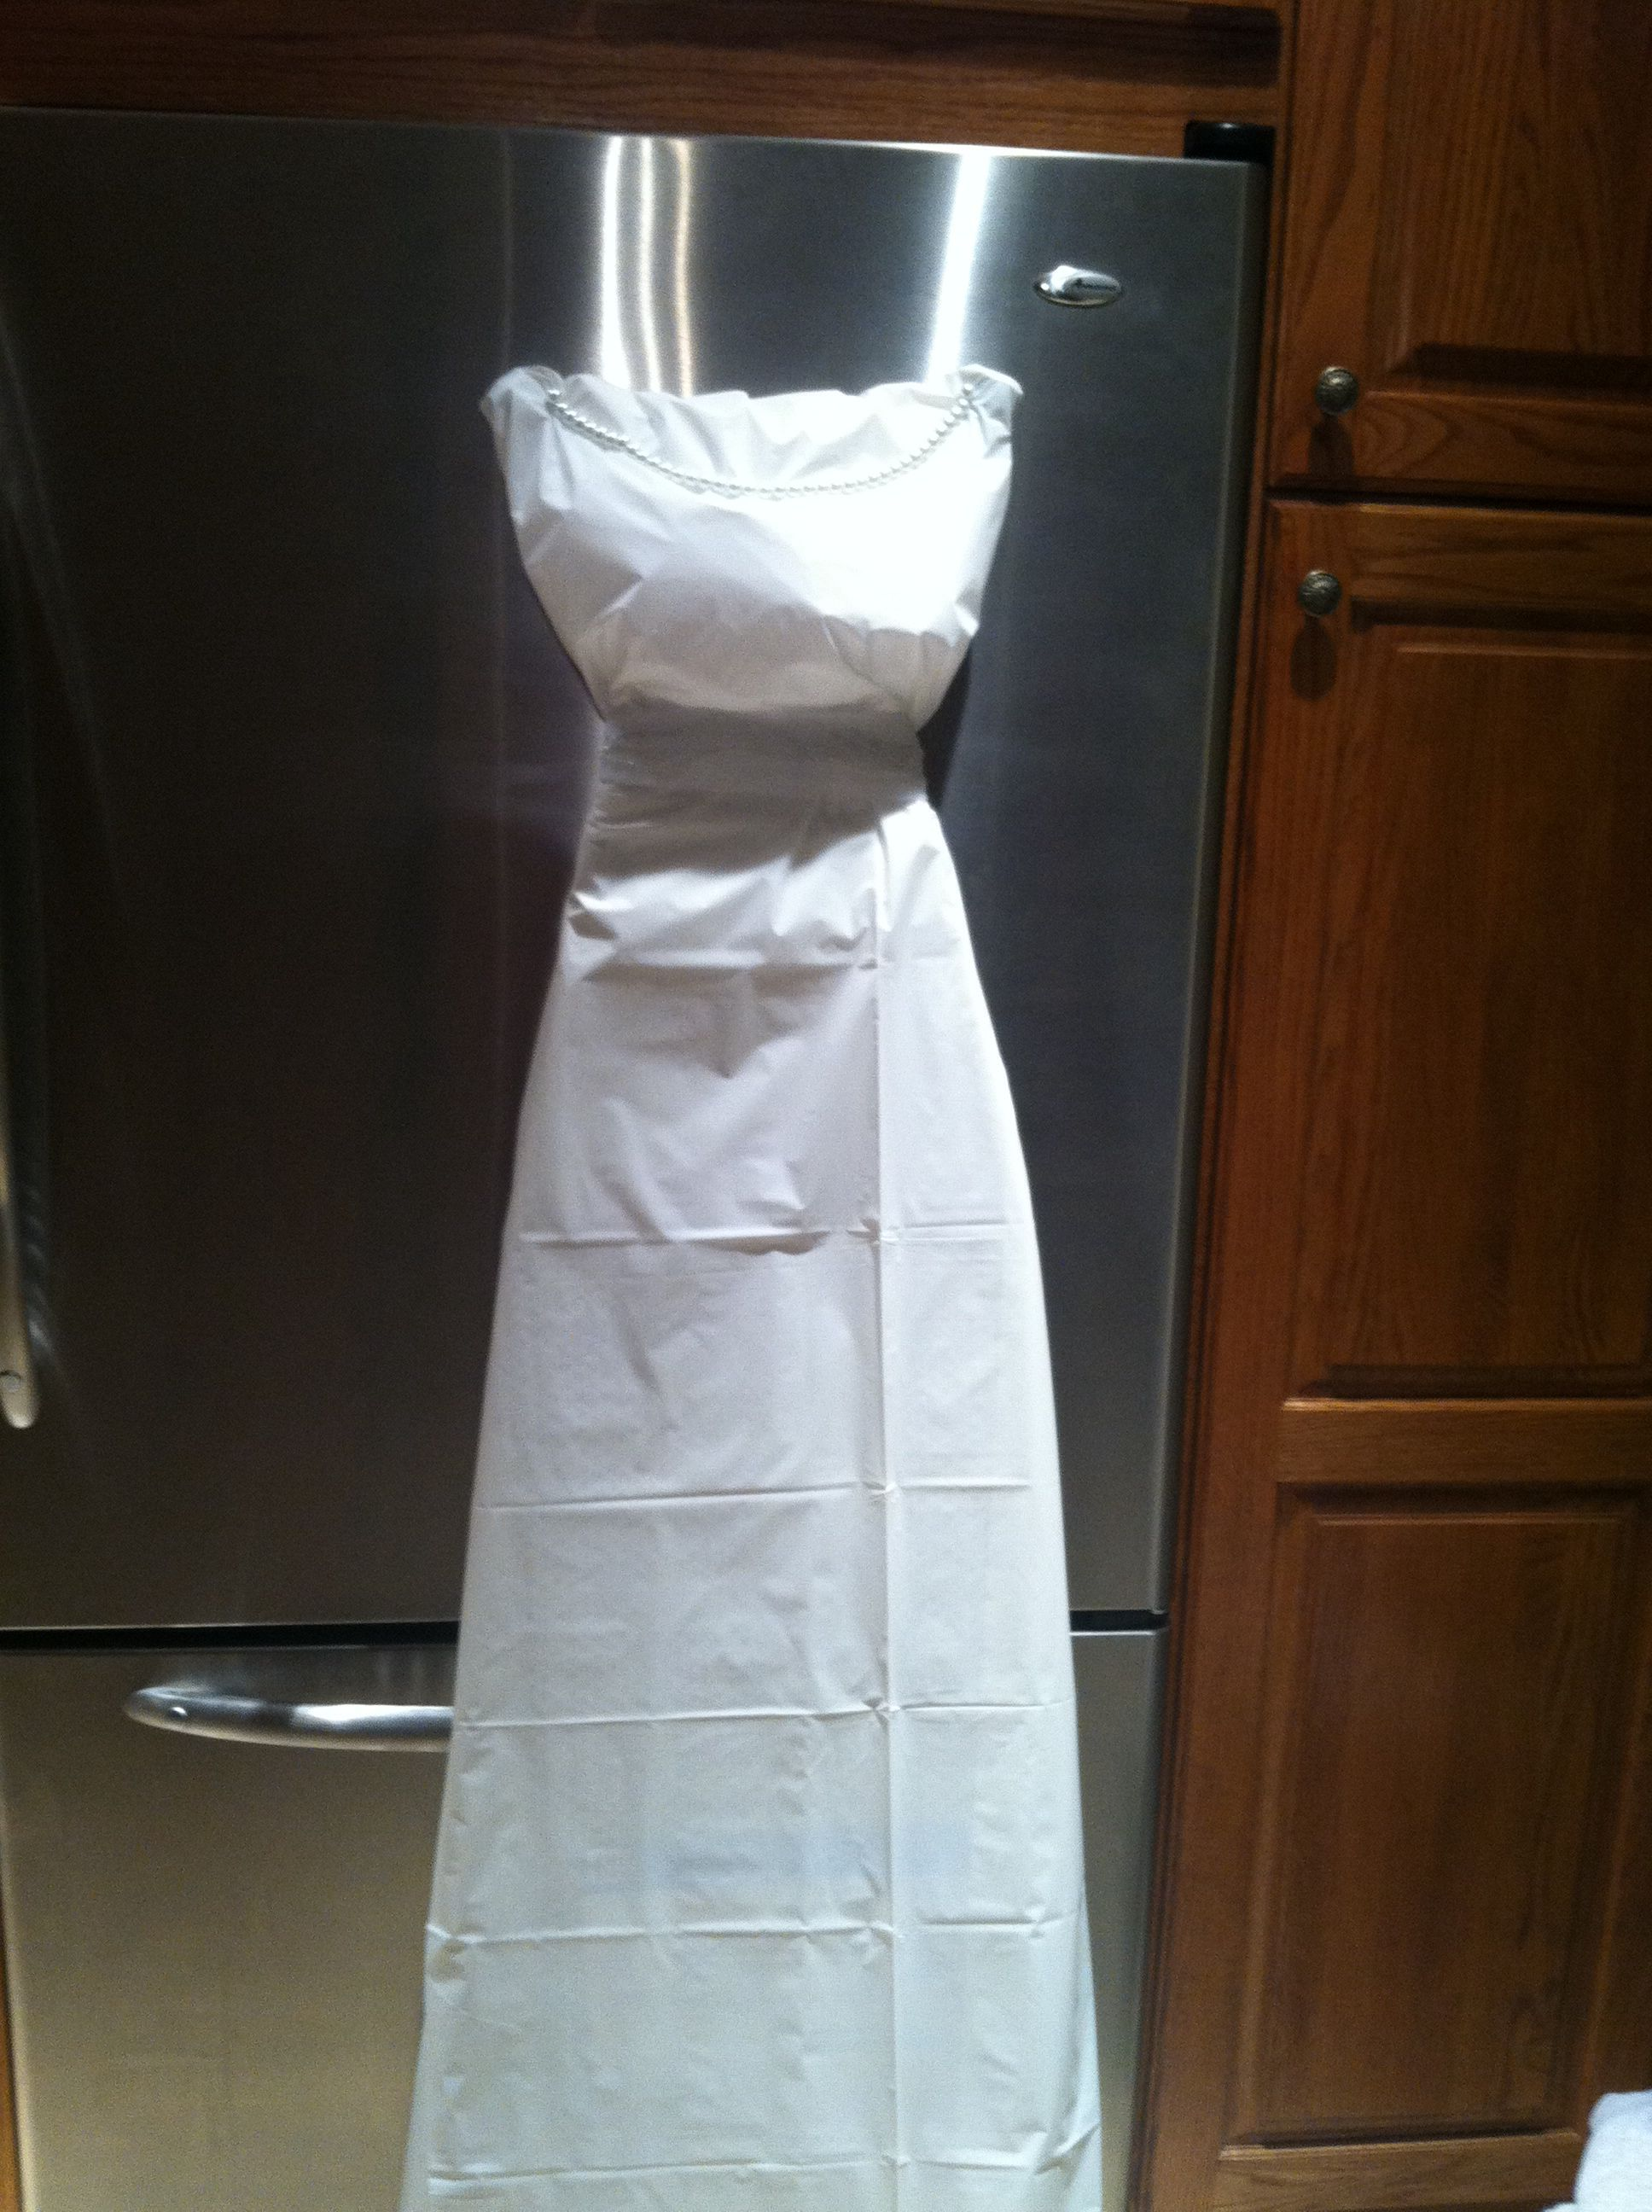 Jessica and I wrapped an ironing board for a bridal shower